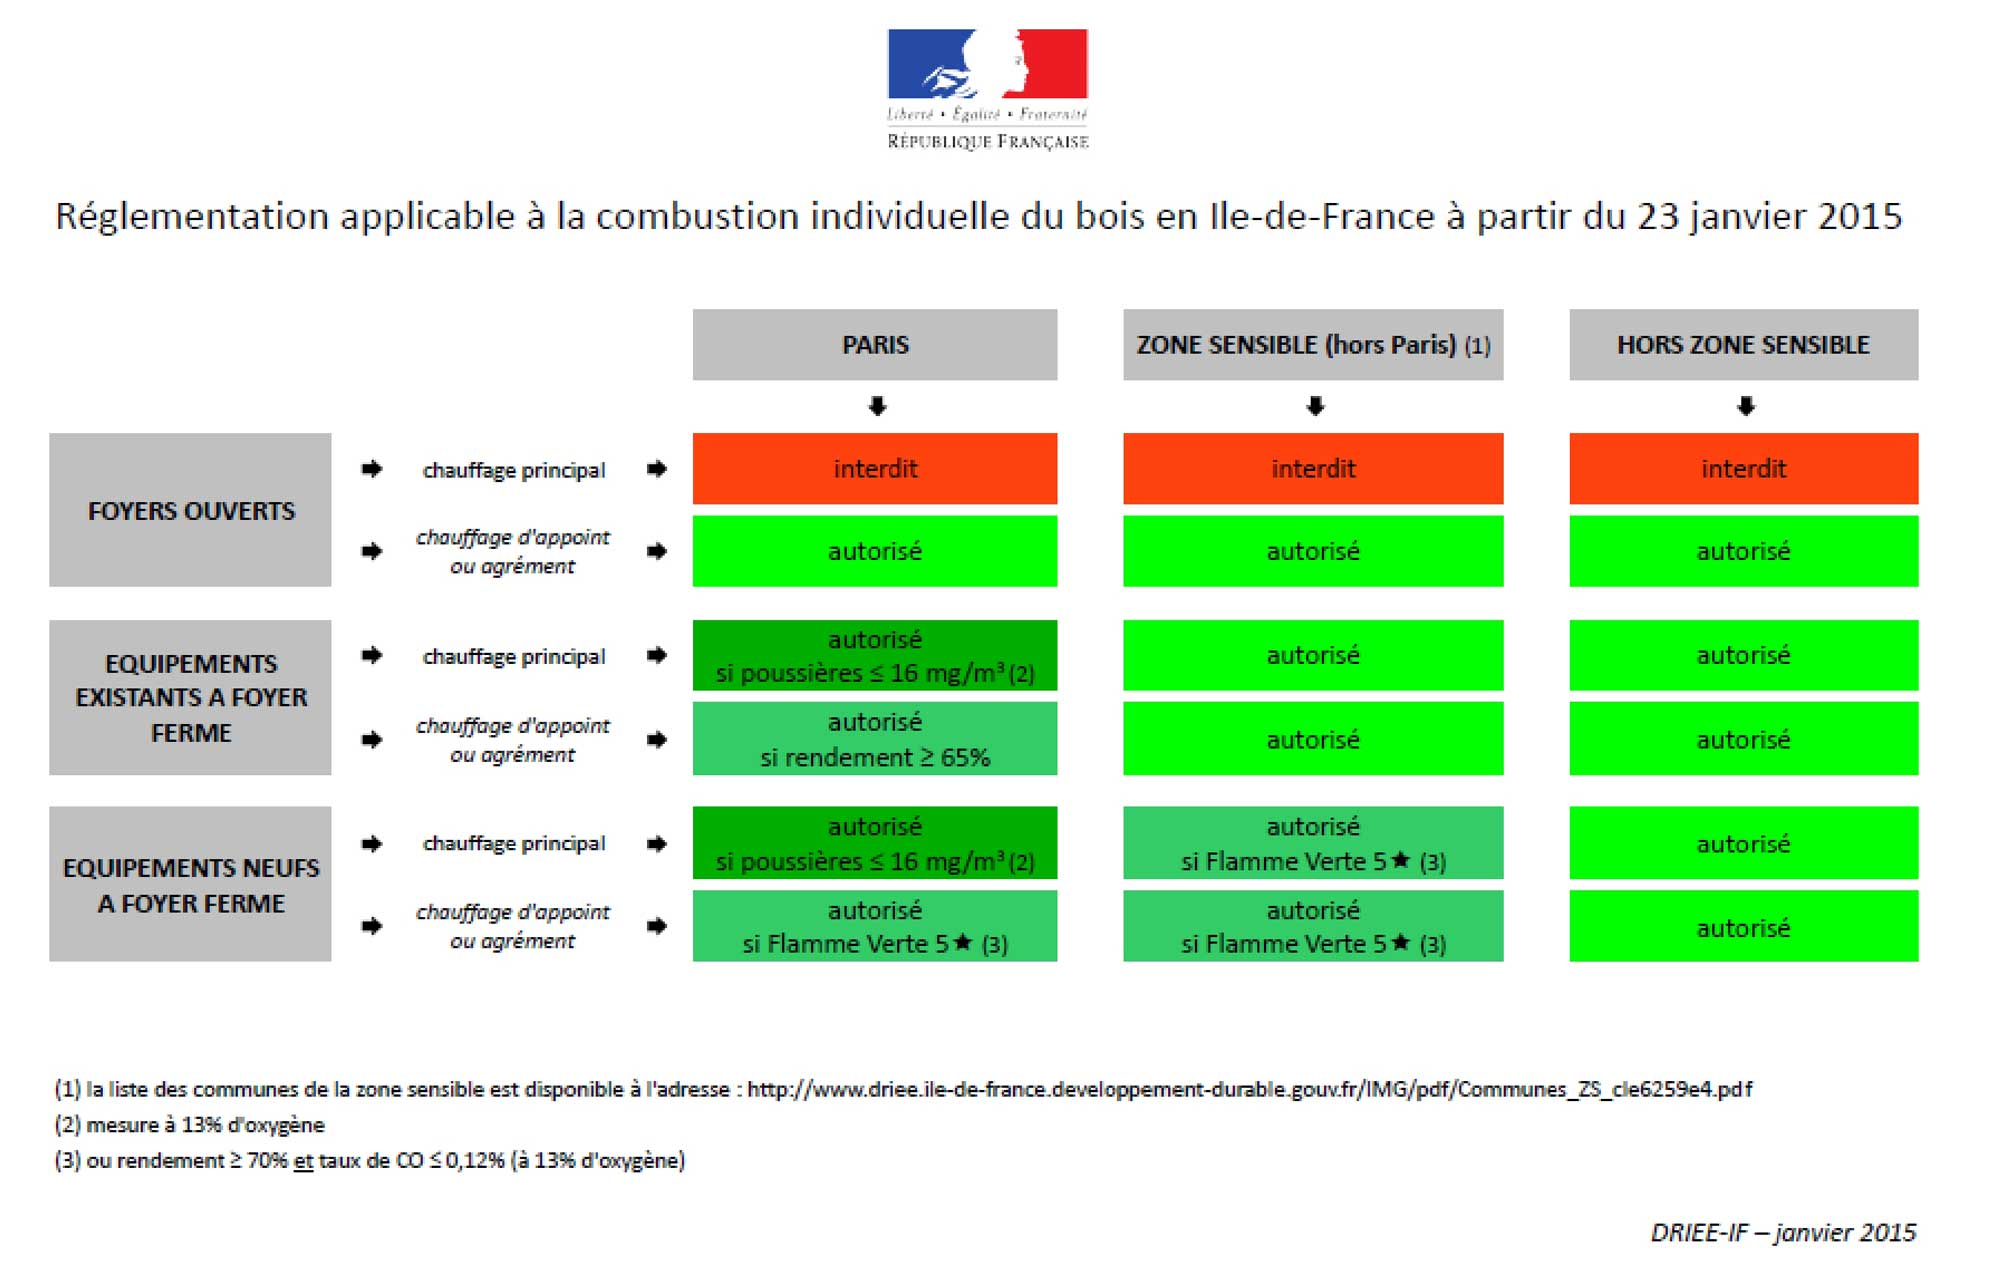 Réglementation du chauffage au bois initialement prévu par la préfecture de Paris. Source : http://www.driee.ile-de-france.developpement-durable.gouv.fr/mise-en-oeuvre-du-ppa-revise-a2246.html